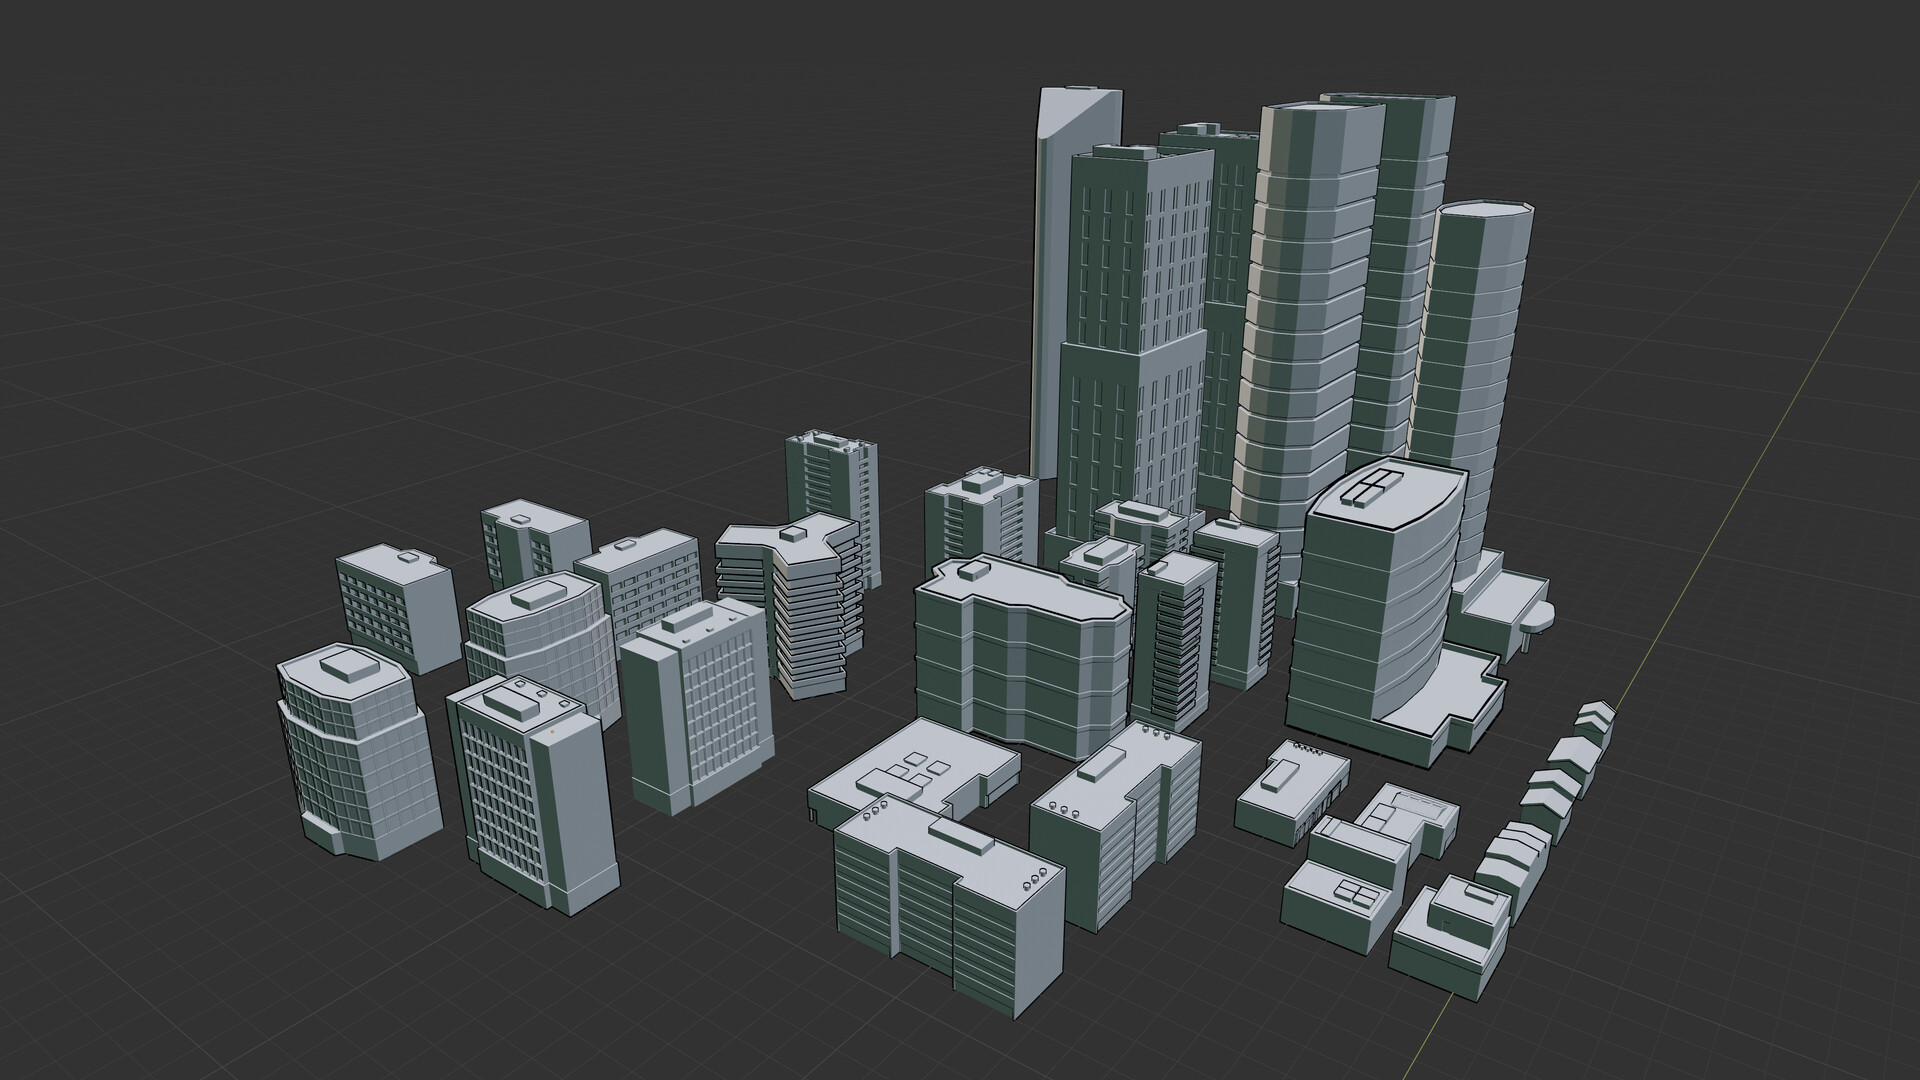 Modelled a variety of building assets in Blender to be used to generate a cityscape